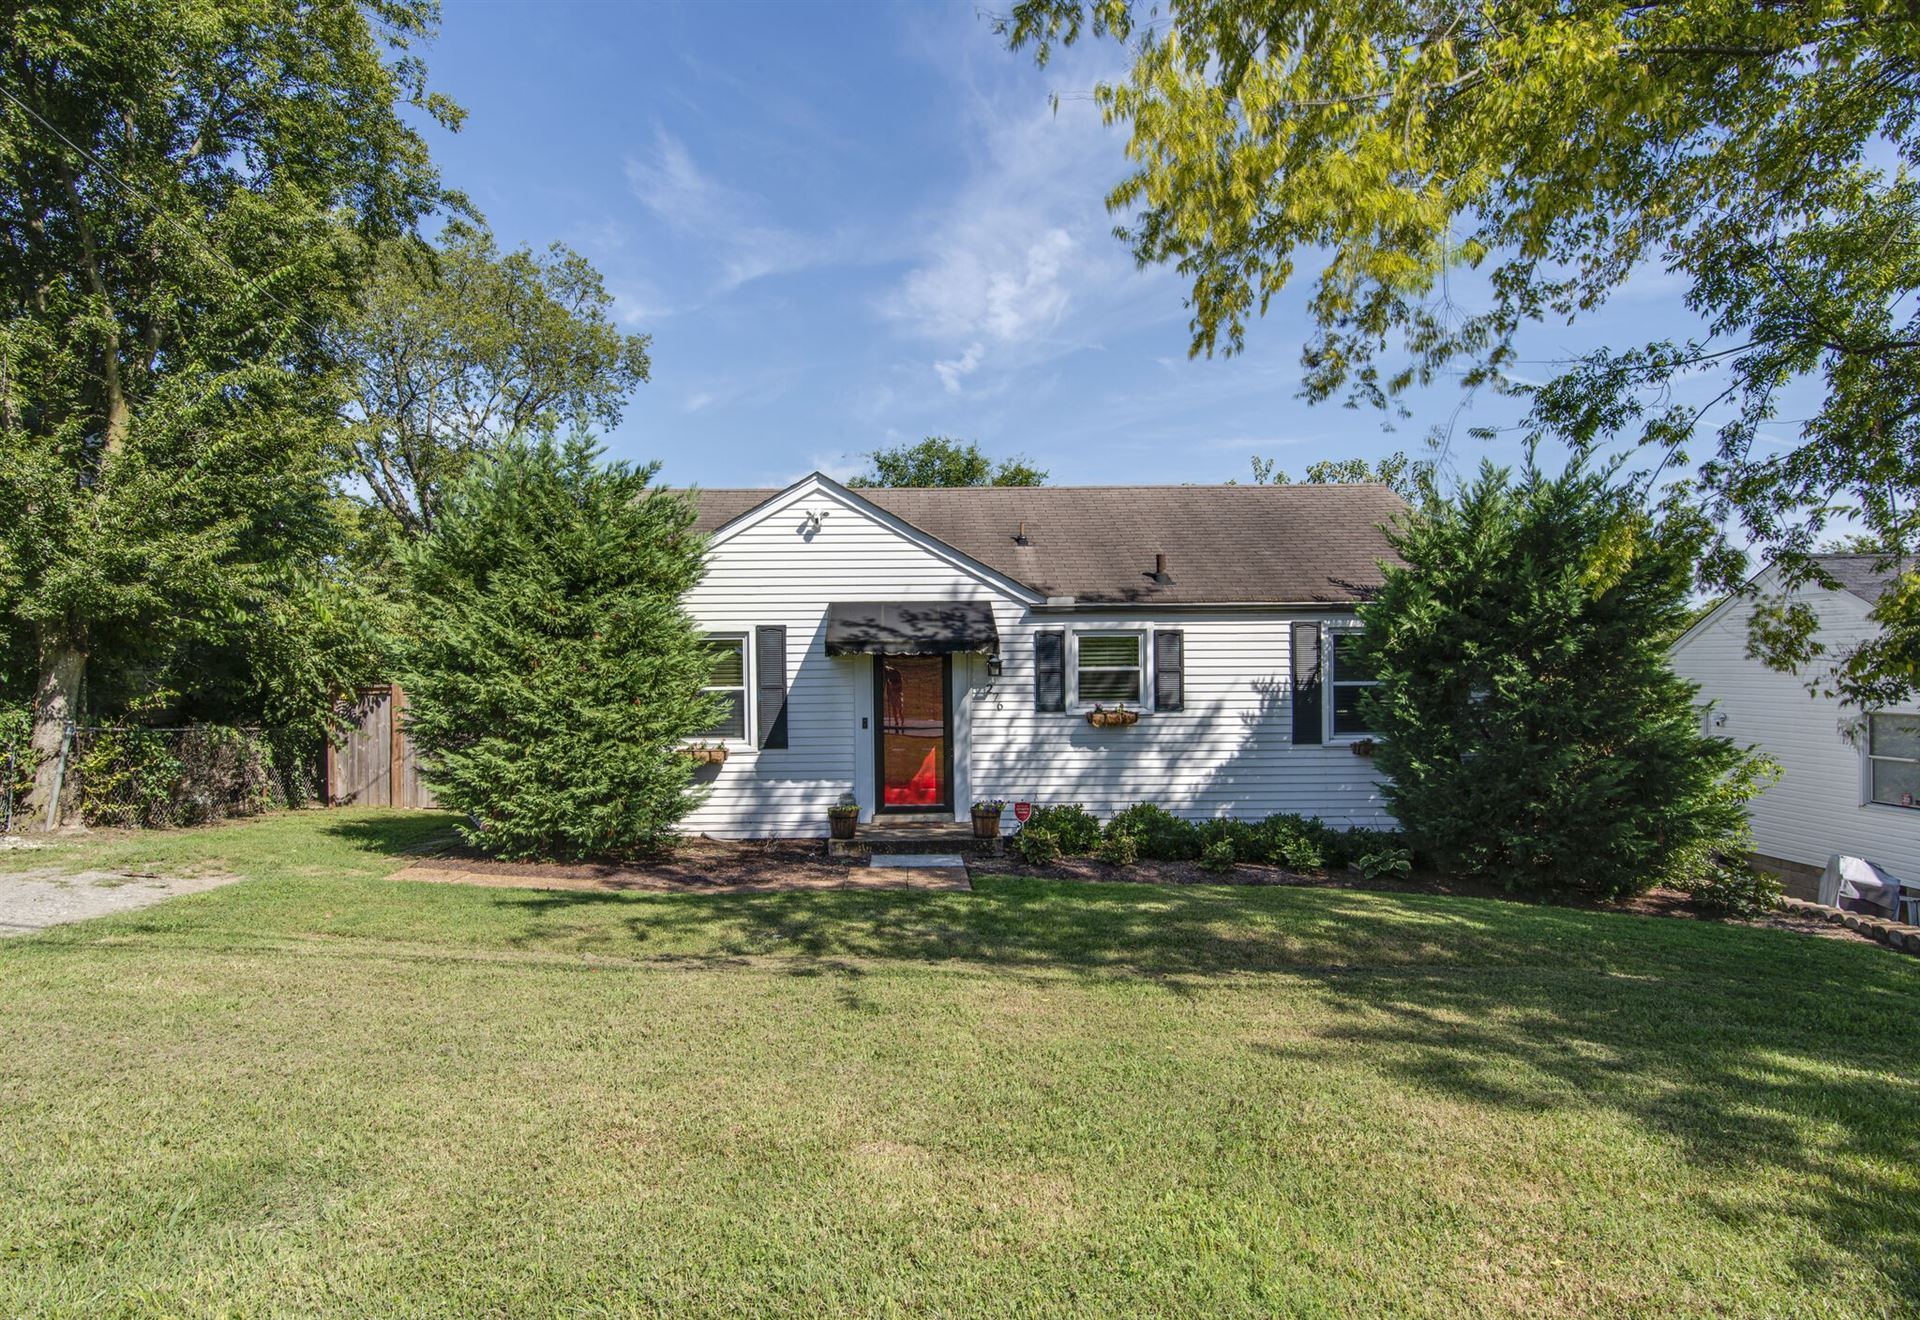 276 38th Ave N, Nashville, TN 37209 - MLS#: 2187425